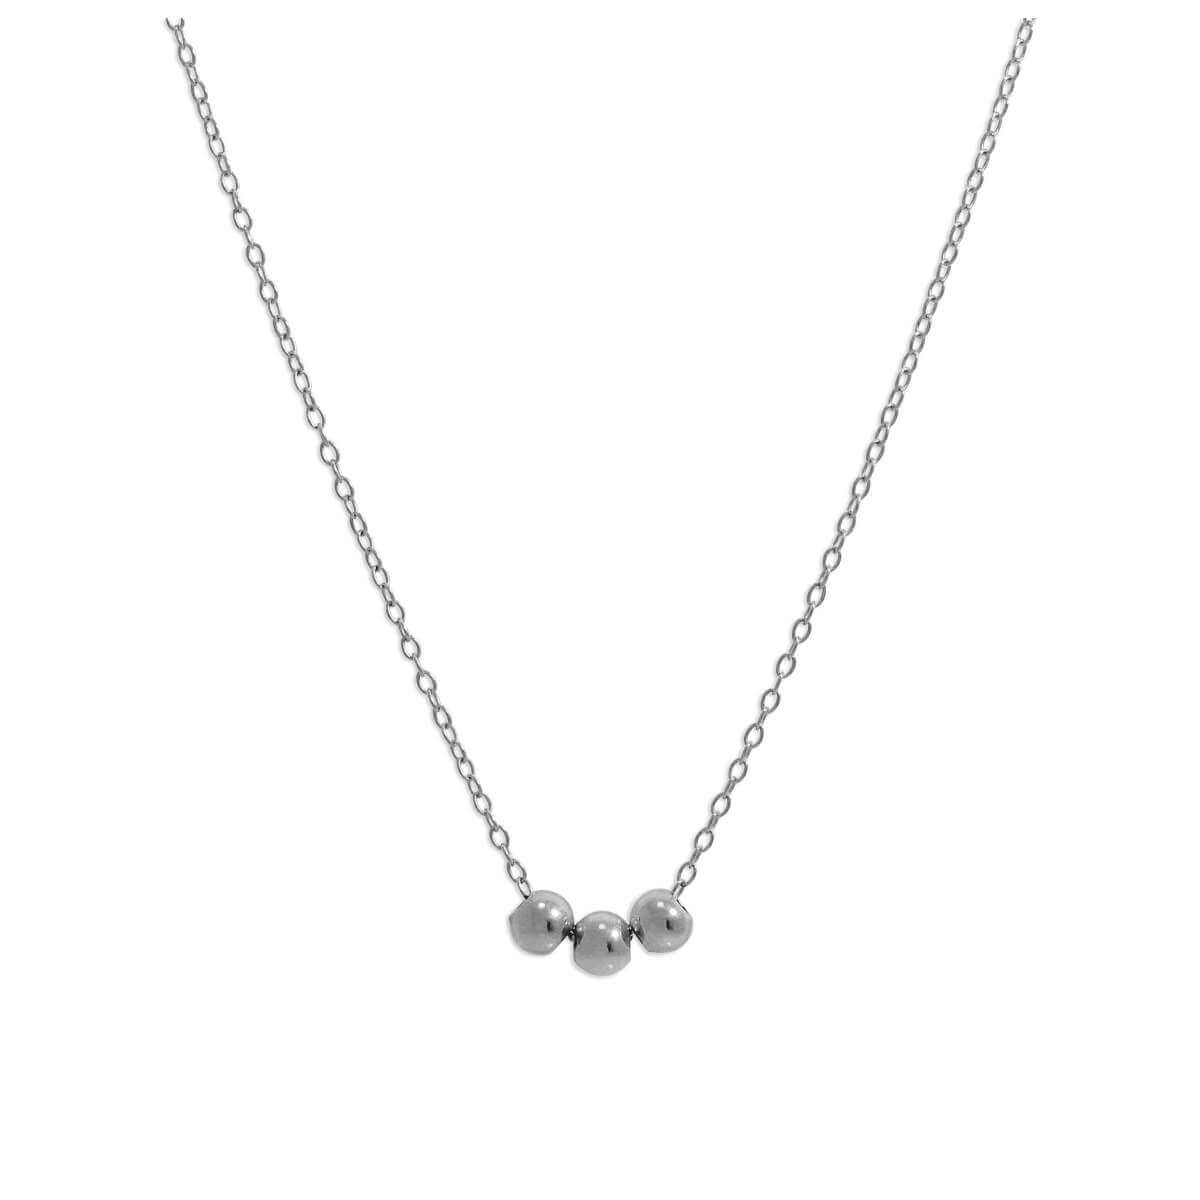 Sterling Silver Triple Sliding Ball Necklace - 18 Inches